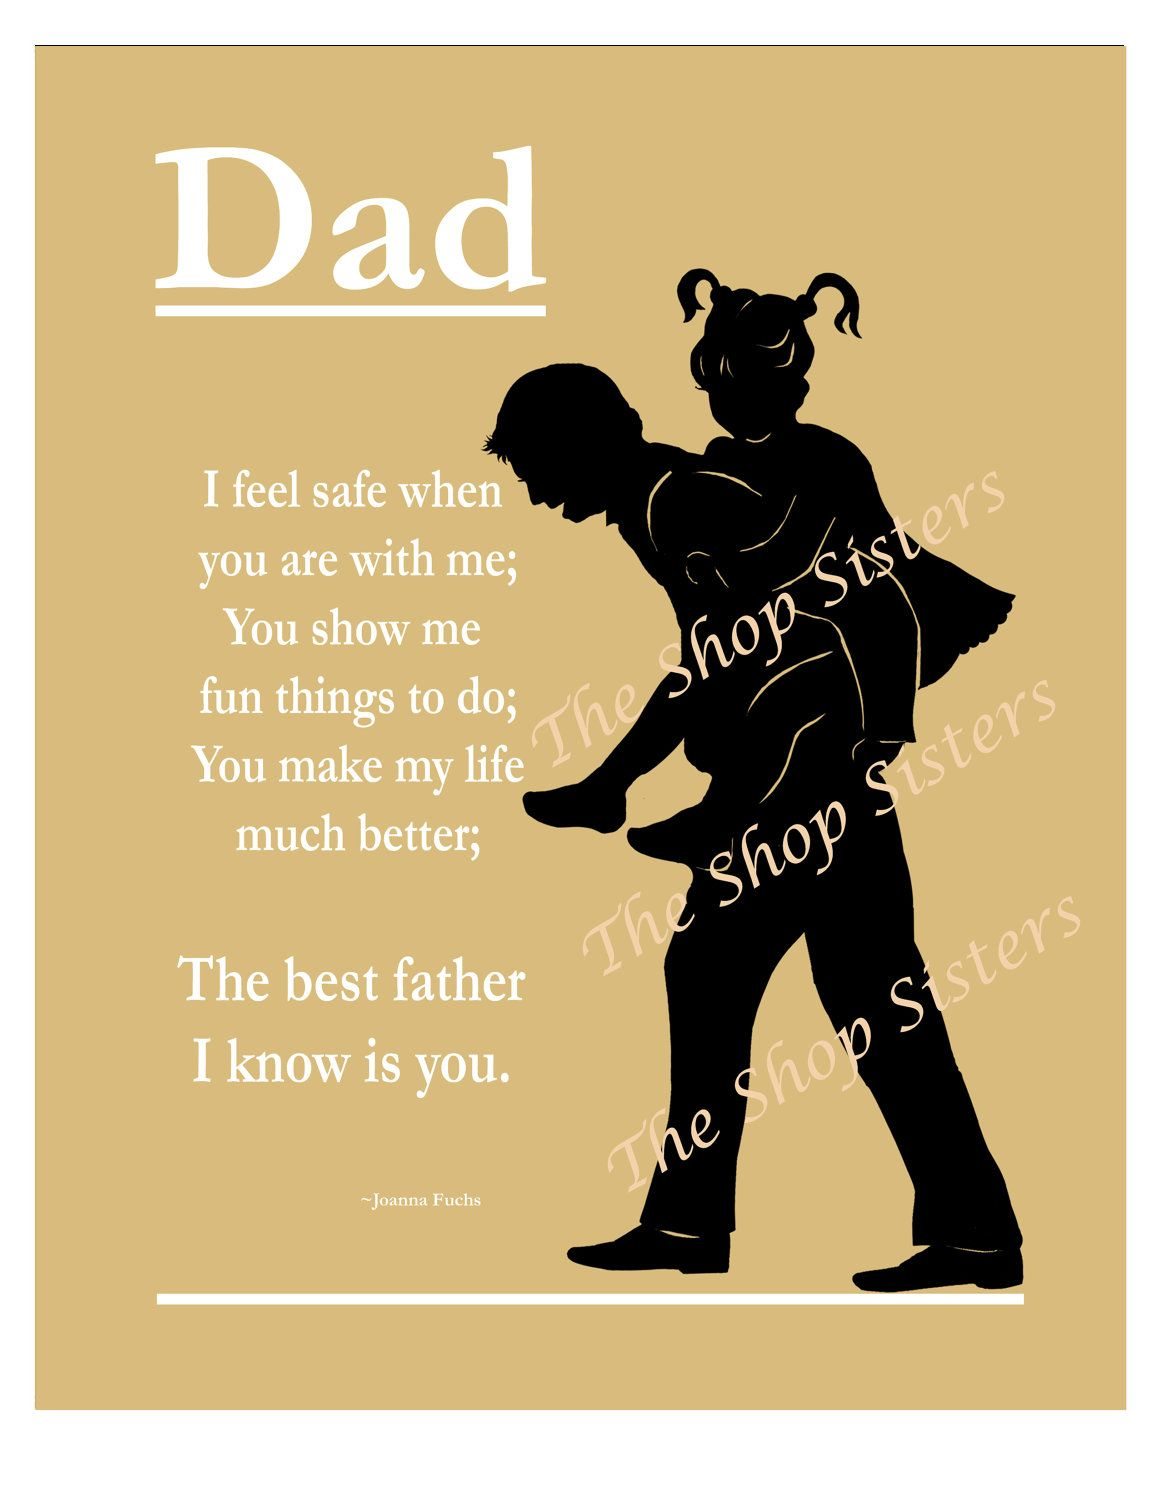 Dad I Feel Safe When You Are With Me You Show Me Fun Things To Do You Make My Lif Much Bet Funny Fathers Day Poems Fathers Day Quotes Happy Father